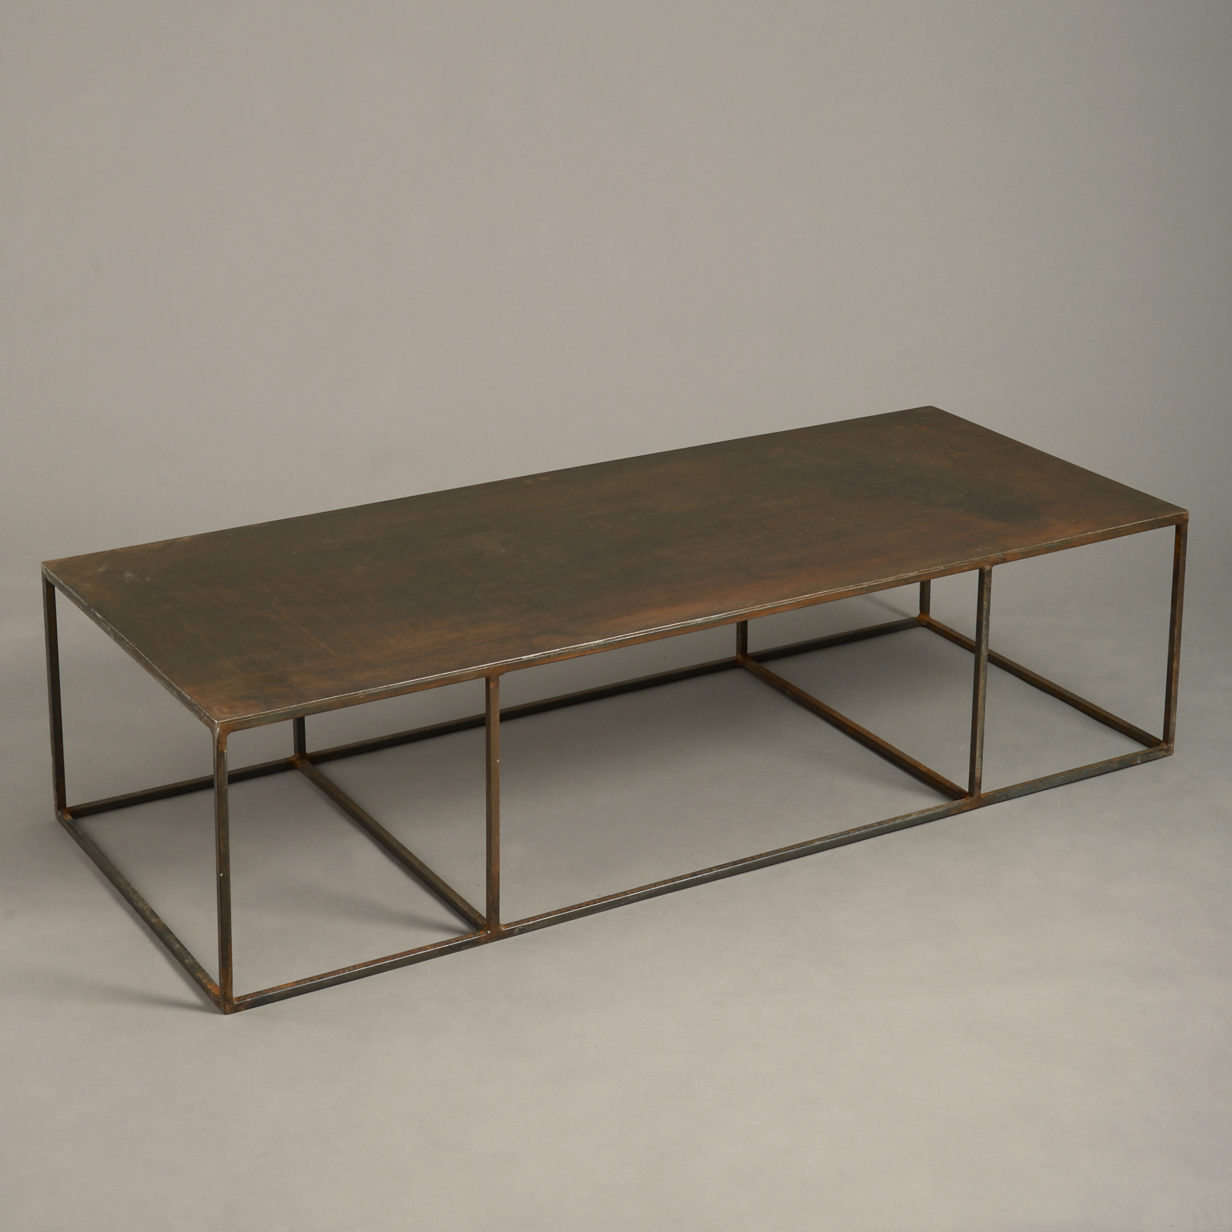 A Mid-century Modern Low Table